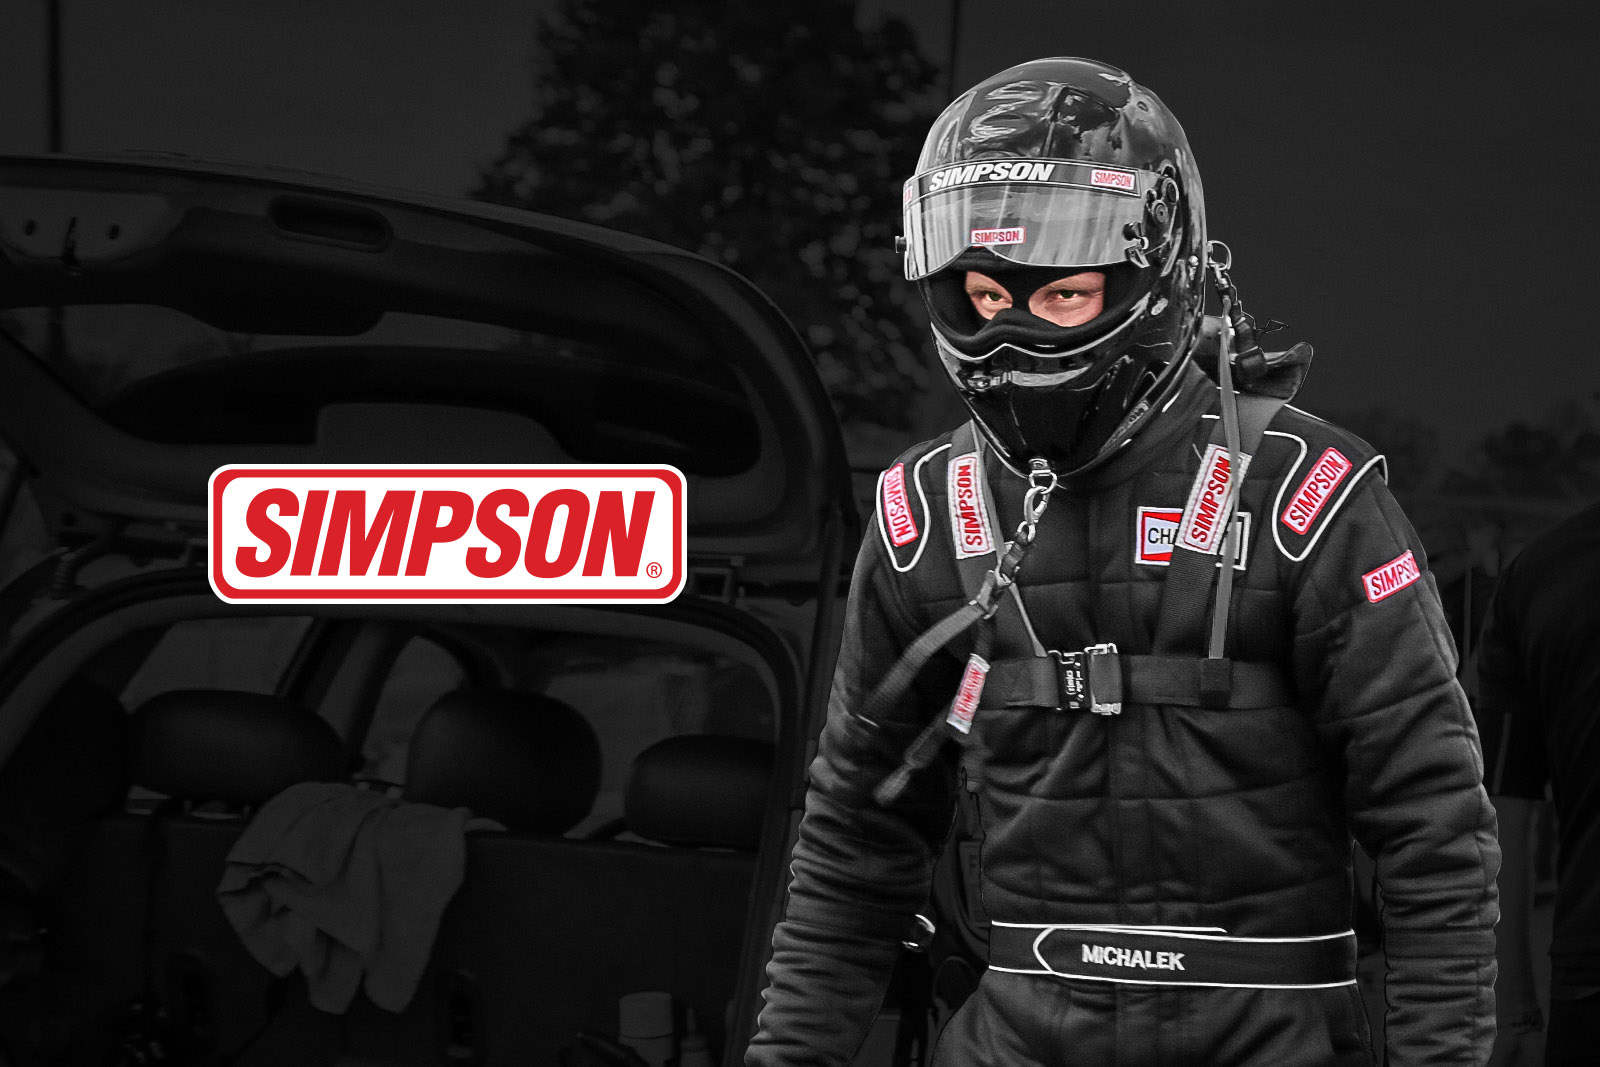 Michalek Brothers Racing and Simpson Performance Products Begin Partnership in 2016